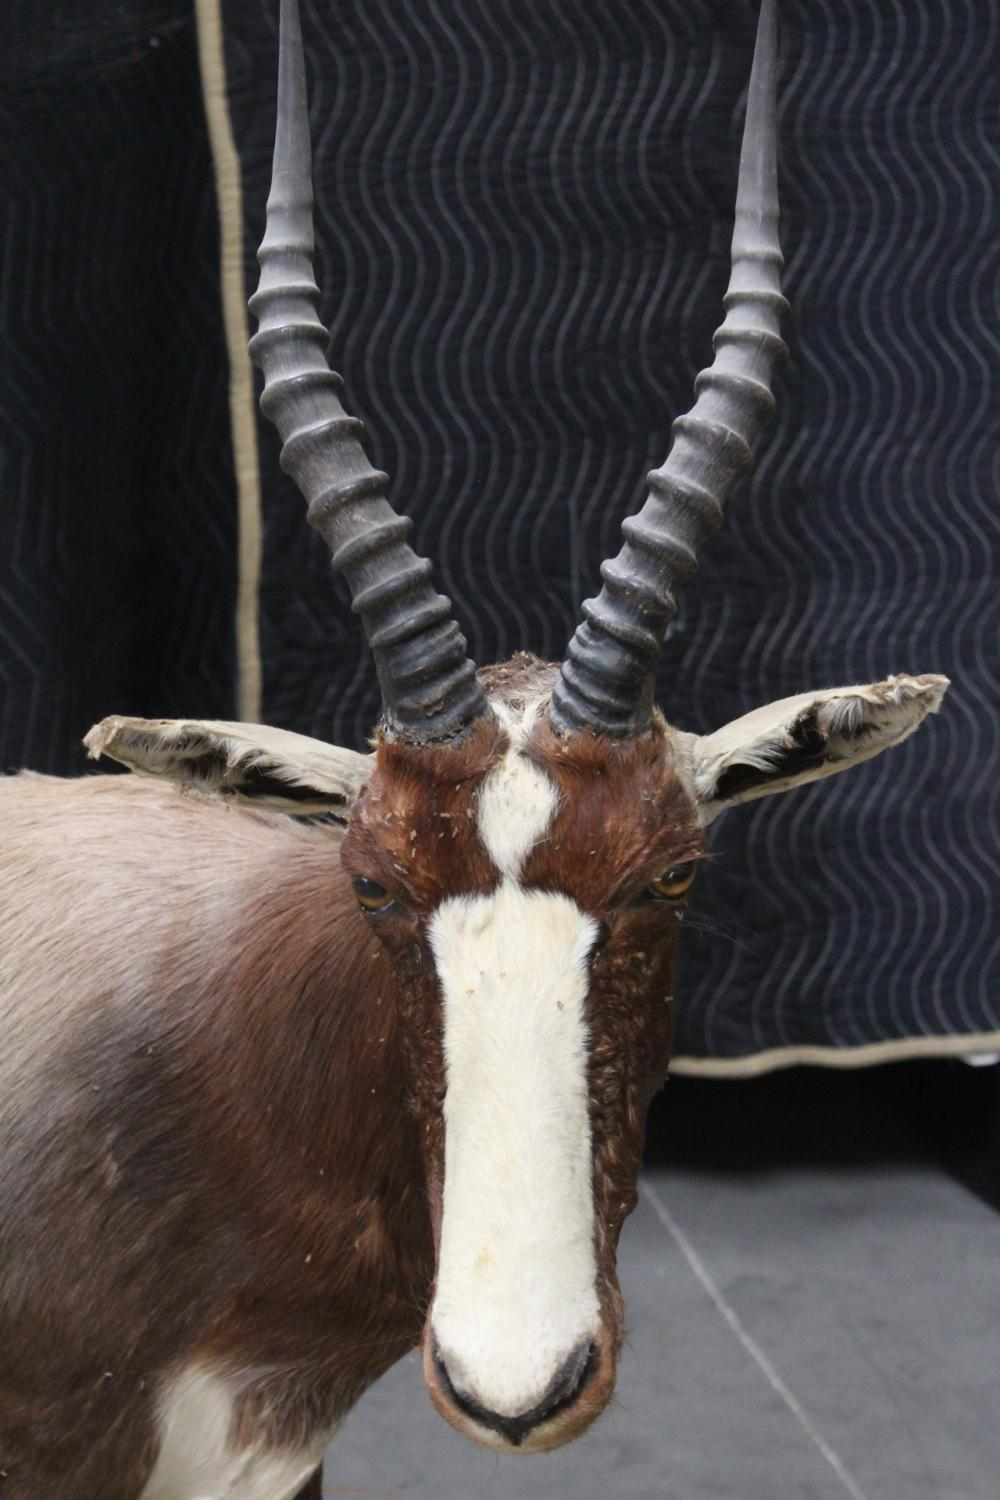 Lot 148: A full body taxidermy of mountain goat